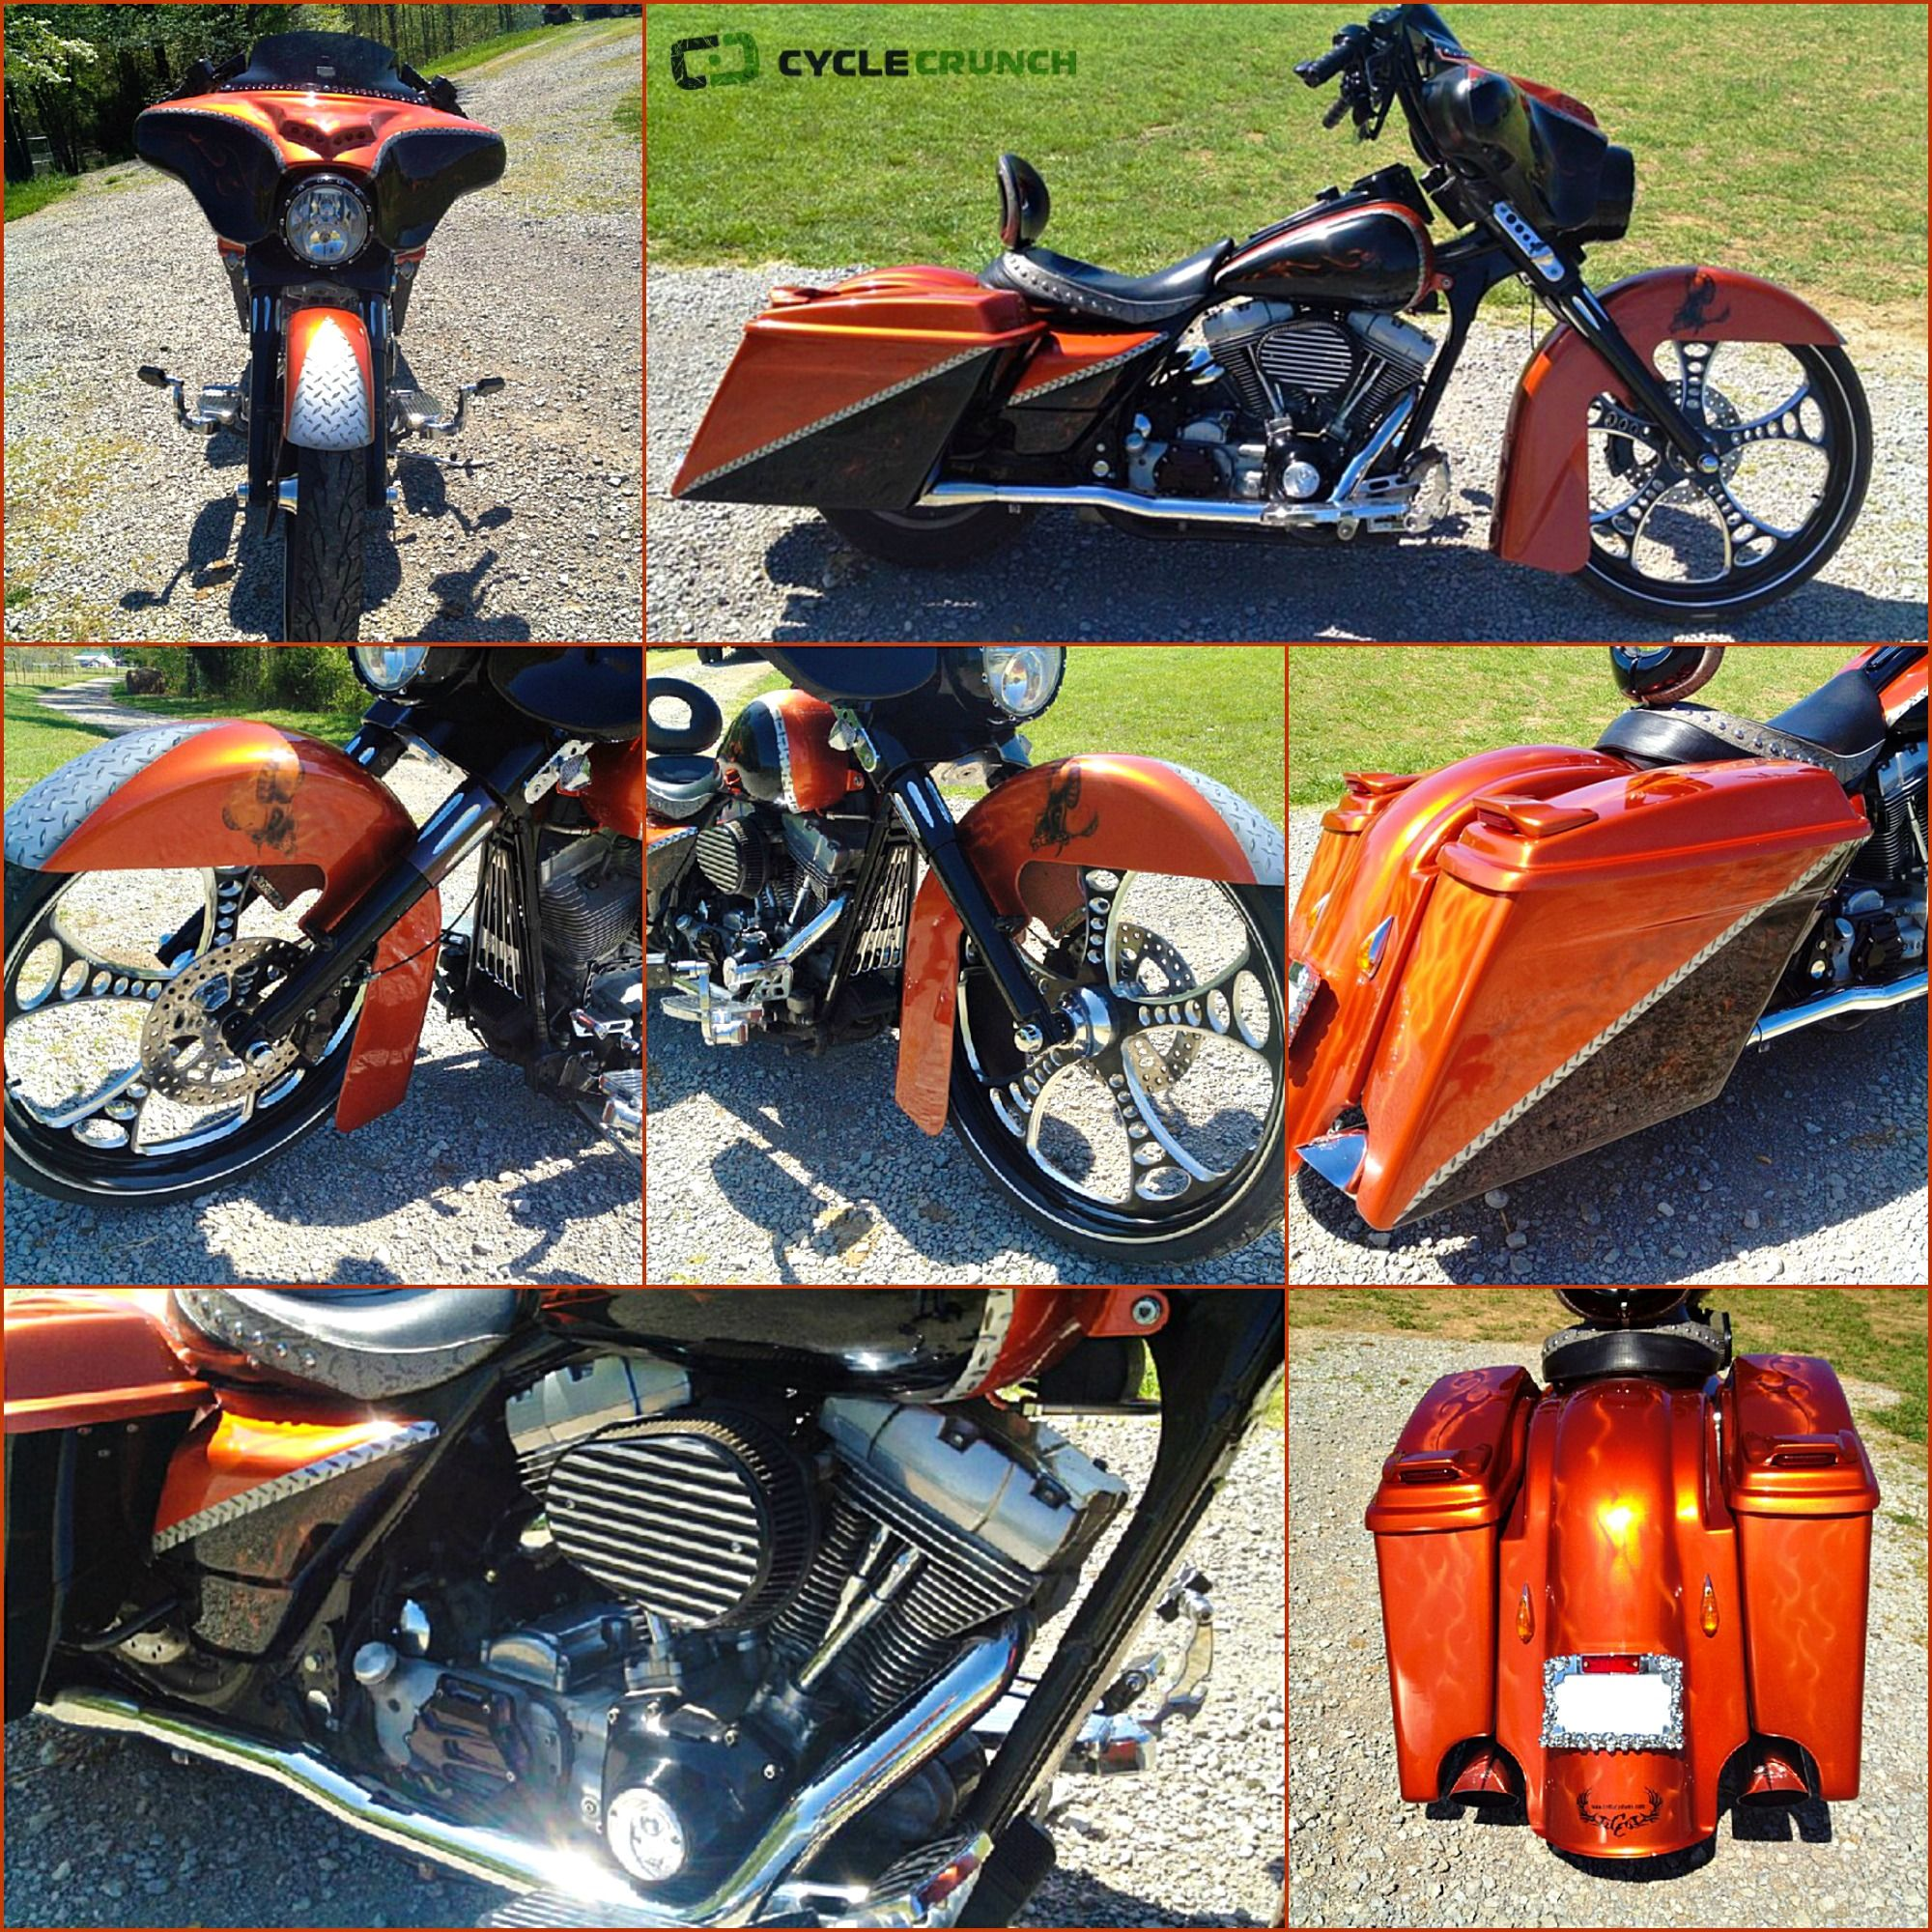 For Sale 2001 Harley Davidson Electra Glide Standard Fully Customized Ethridge Tn Click The Pin For Electra Glide Standard Harley Davidson Electra Glide [ 2000 x 2000 Pixel ]